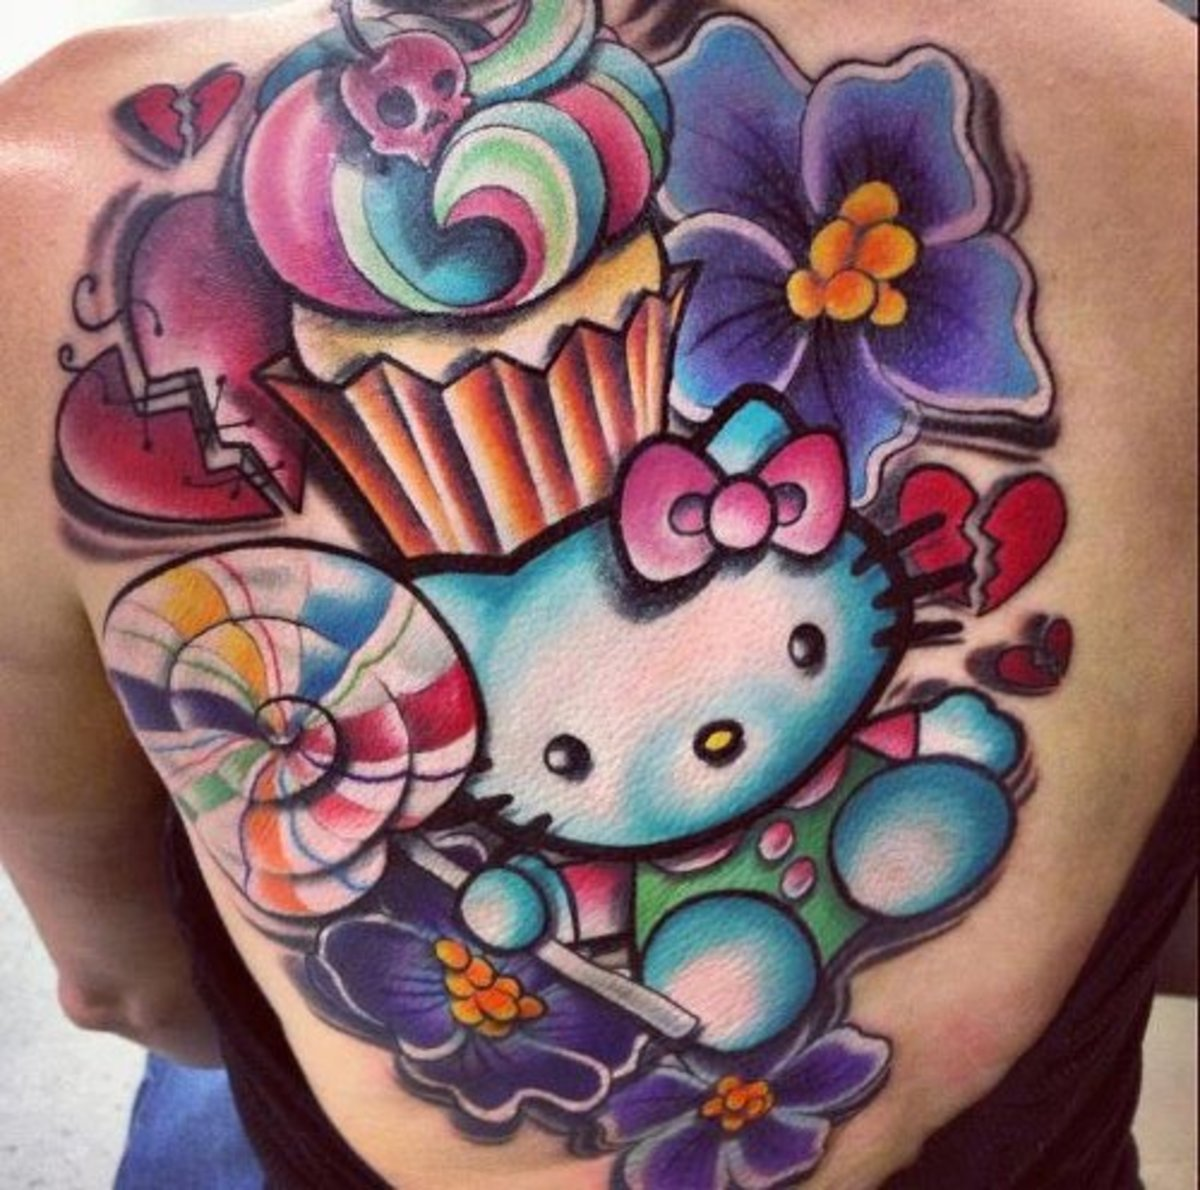 Hello Kitty Tattoos Tattoo Ideas Artists And Models Ideas And Designs